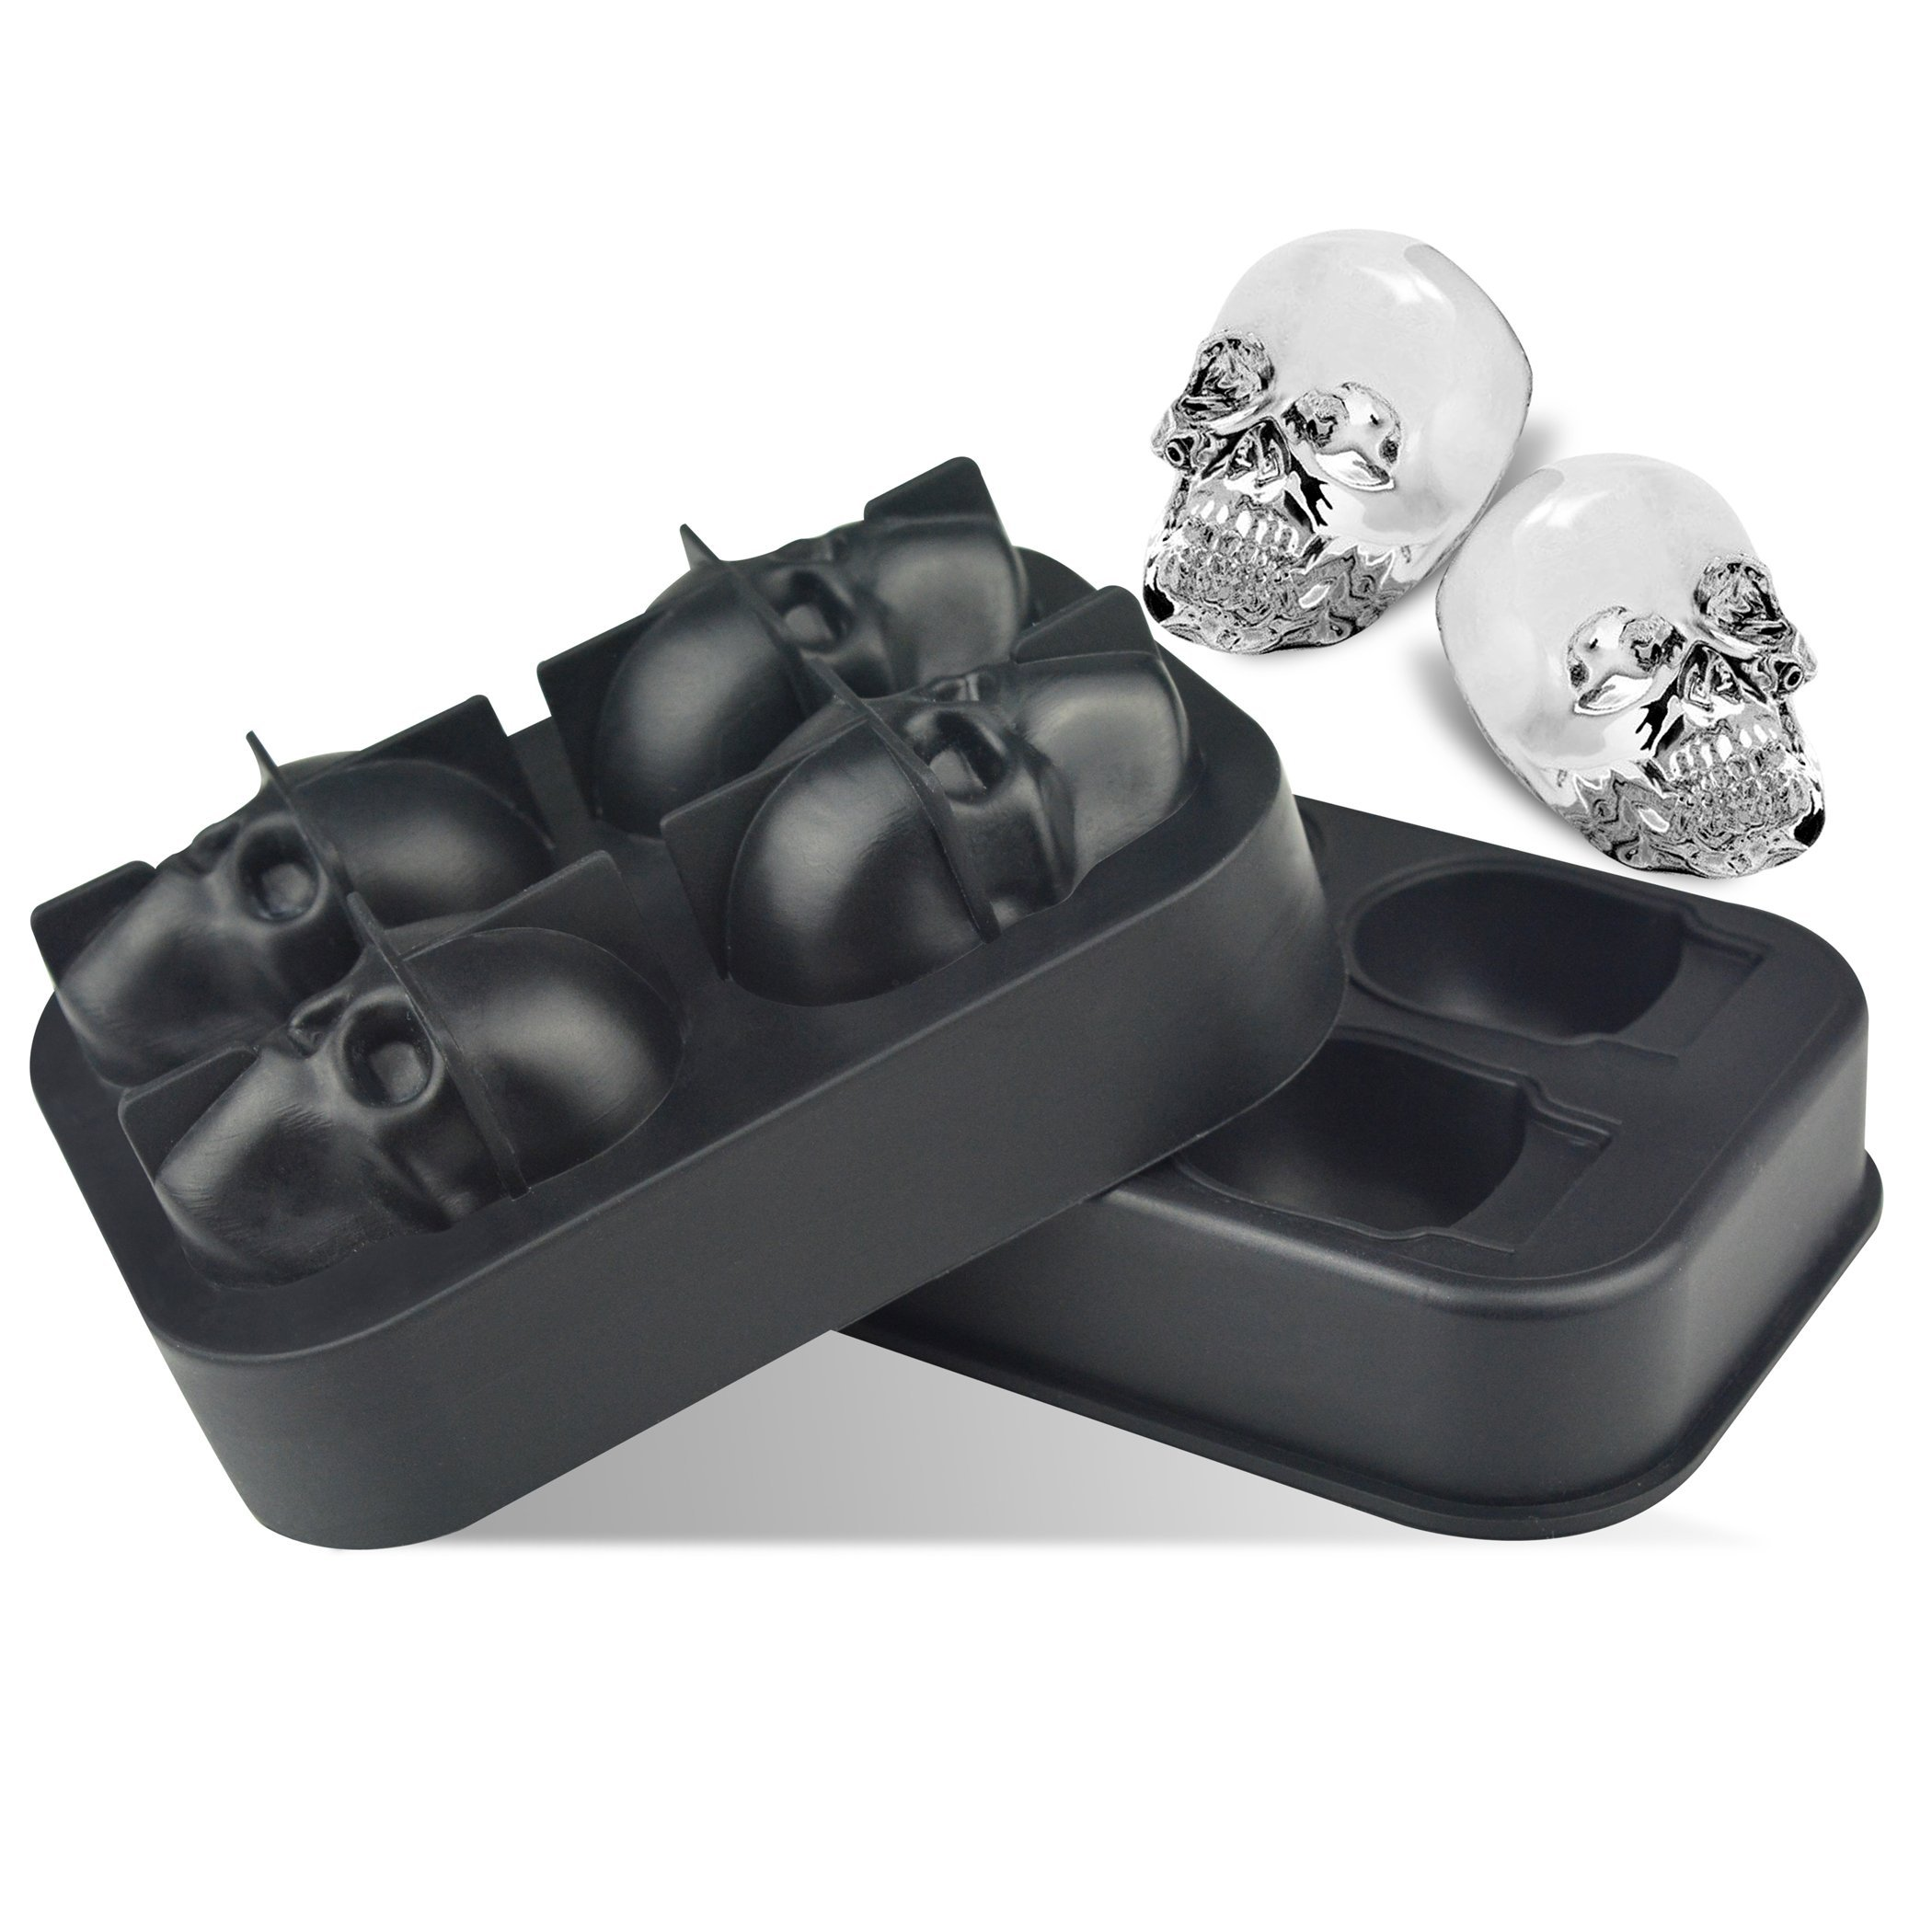 3D Skull Ice Cube Trays for Whisky, Cocktail, Wine, Kitchen, Bar, Party and Halloween by LINPOZONE (Image #2)